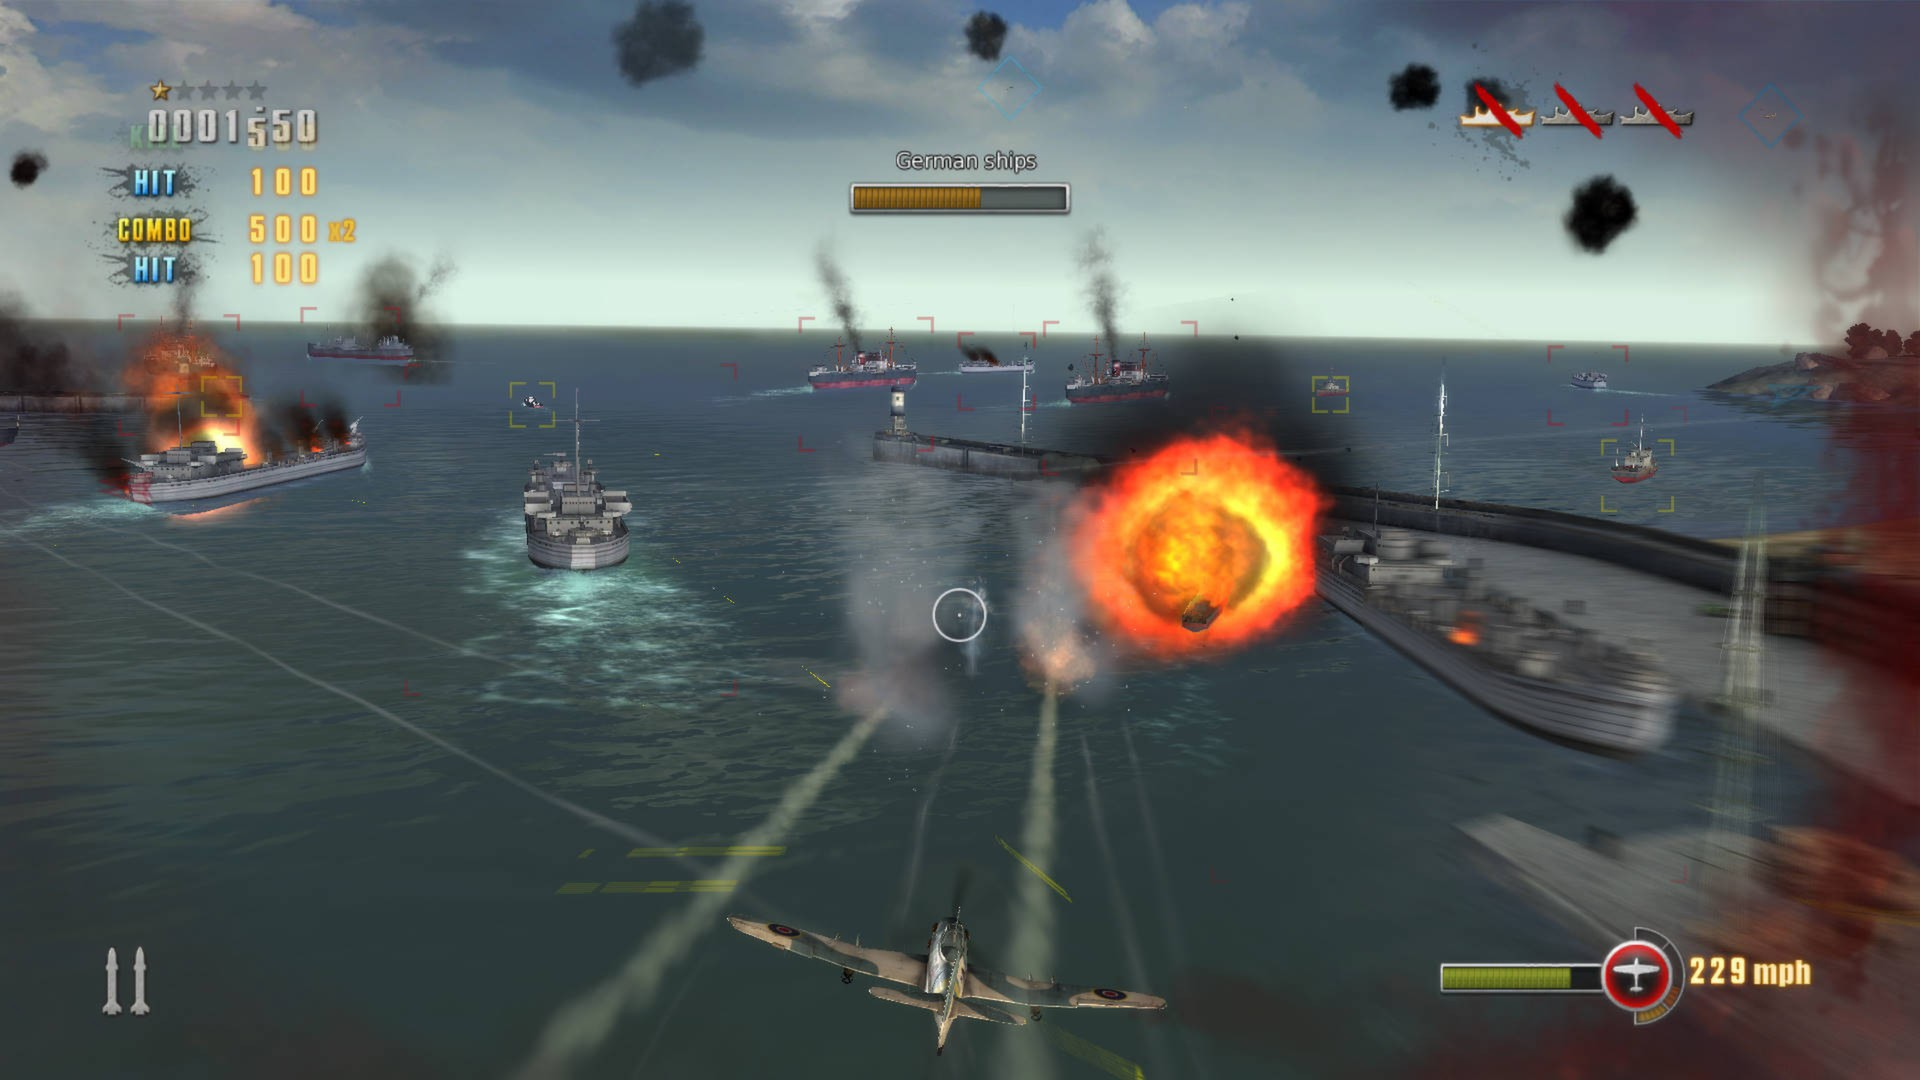 Dogfight 1942 - City Interactive S.A. - CI Games - Blacknut Cloud Gaming